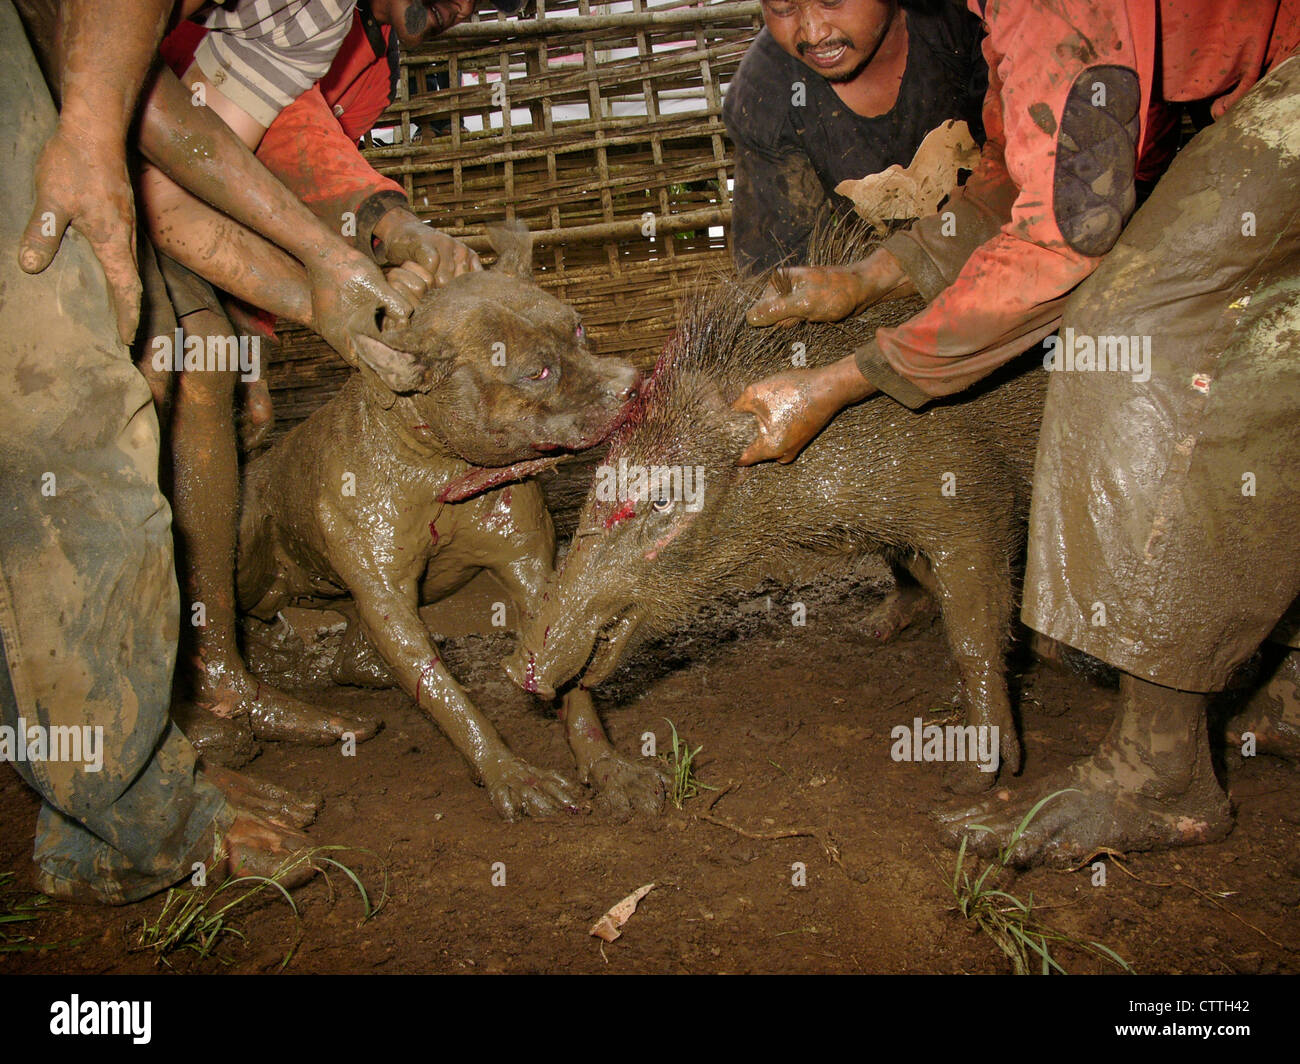 Owners encourage their attack-dog to maul a wild pig during a legal boar-baiting contest in West Java, Indonesia. - Stock Image